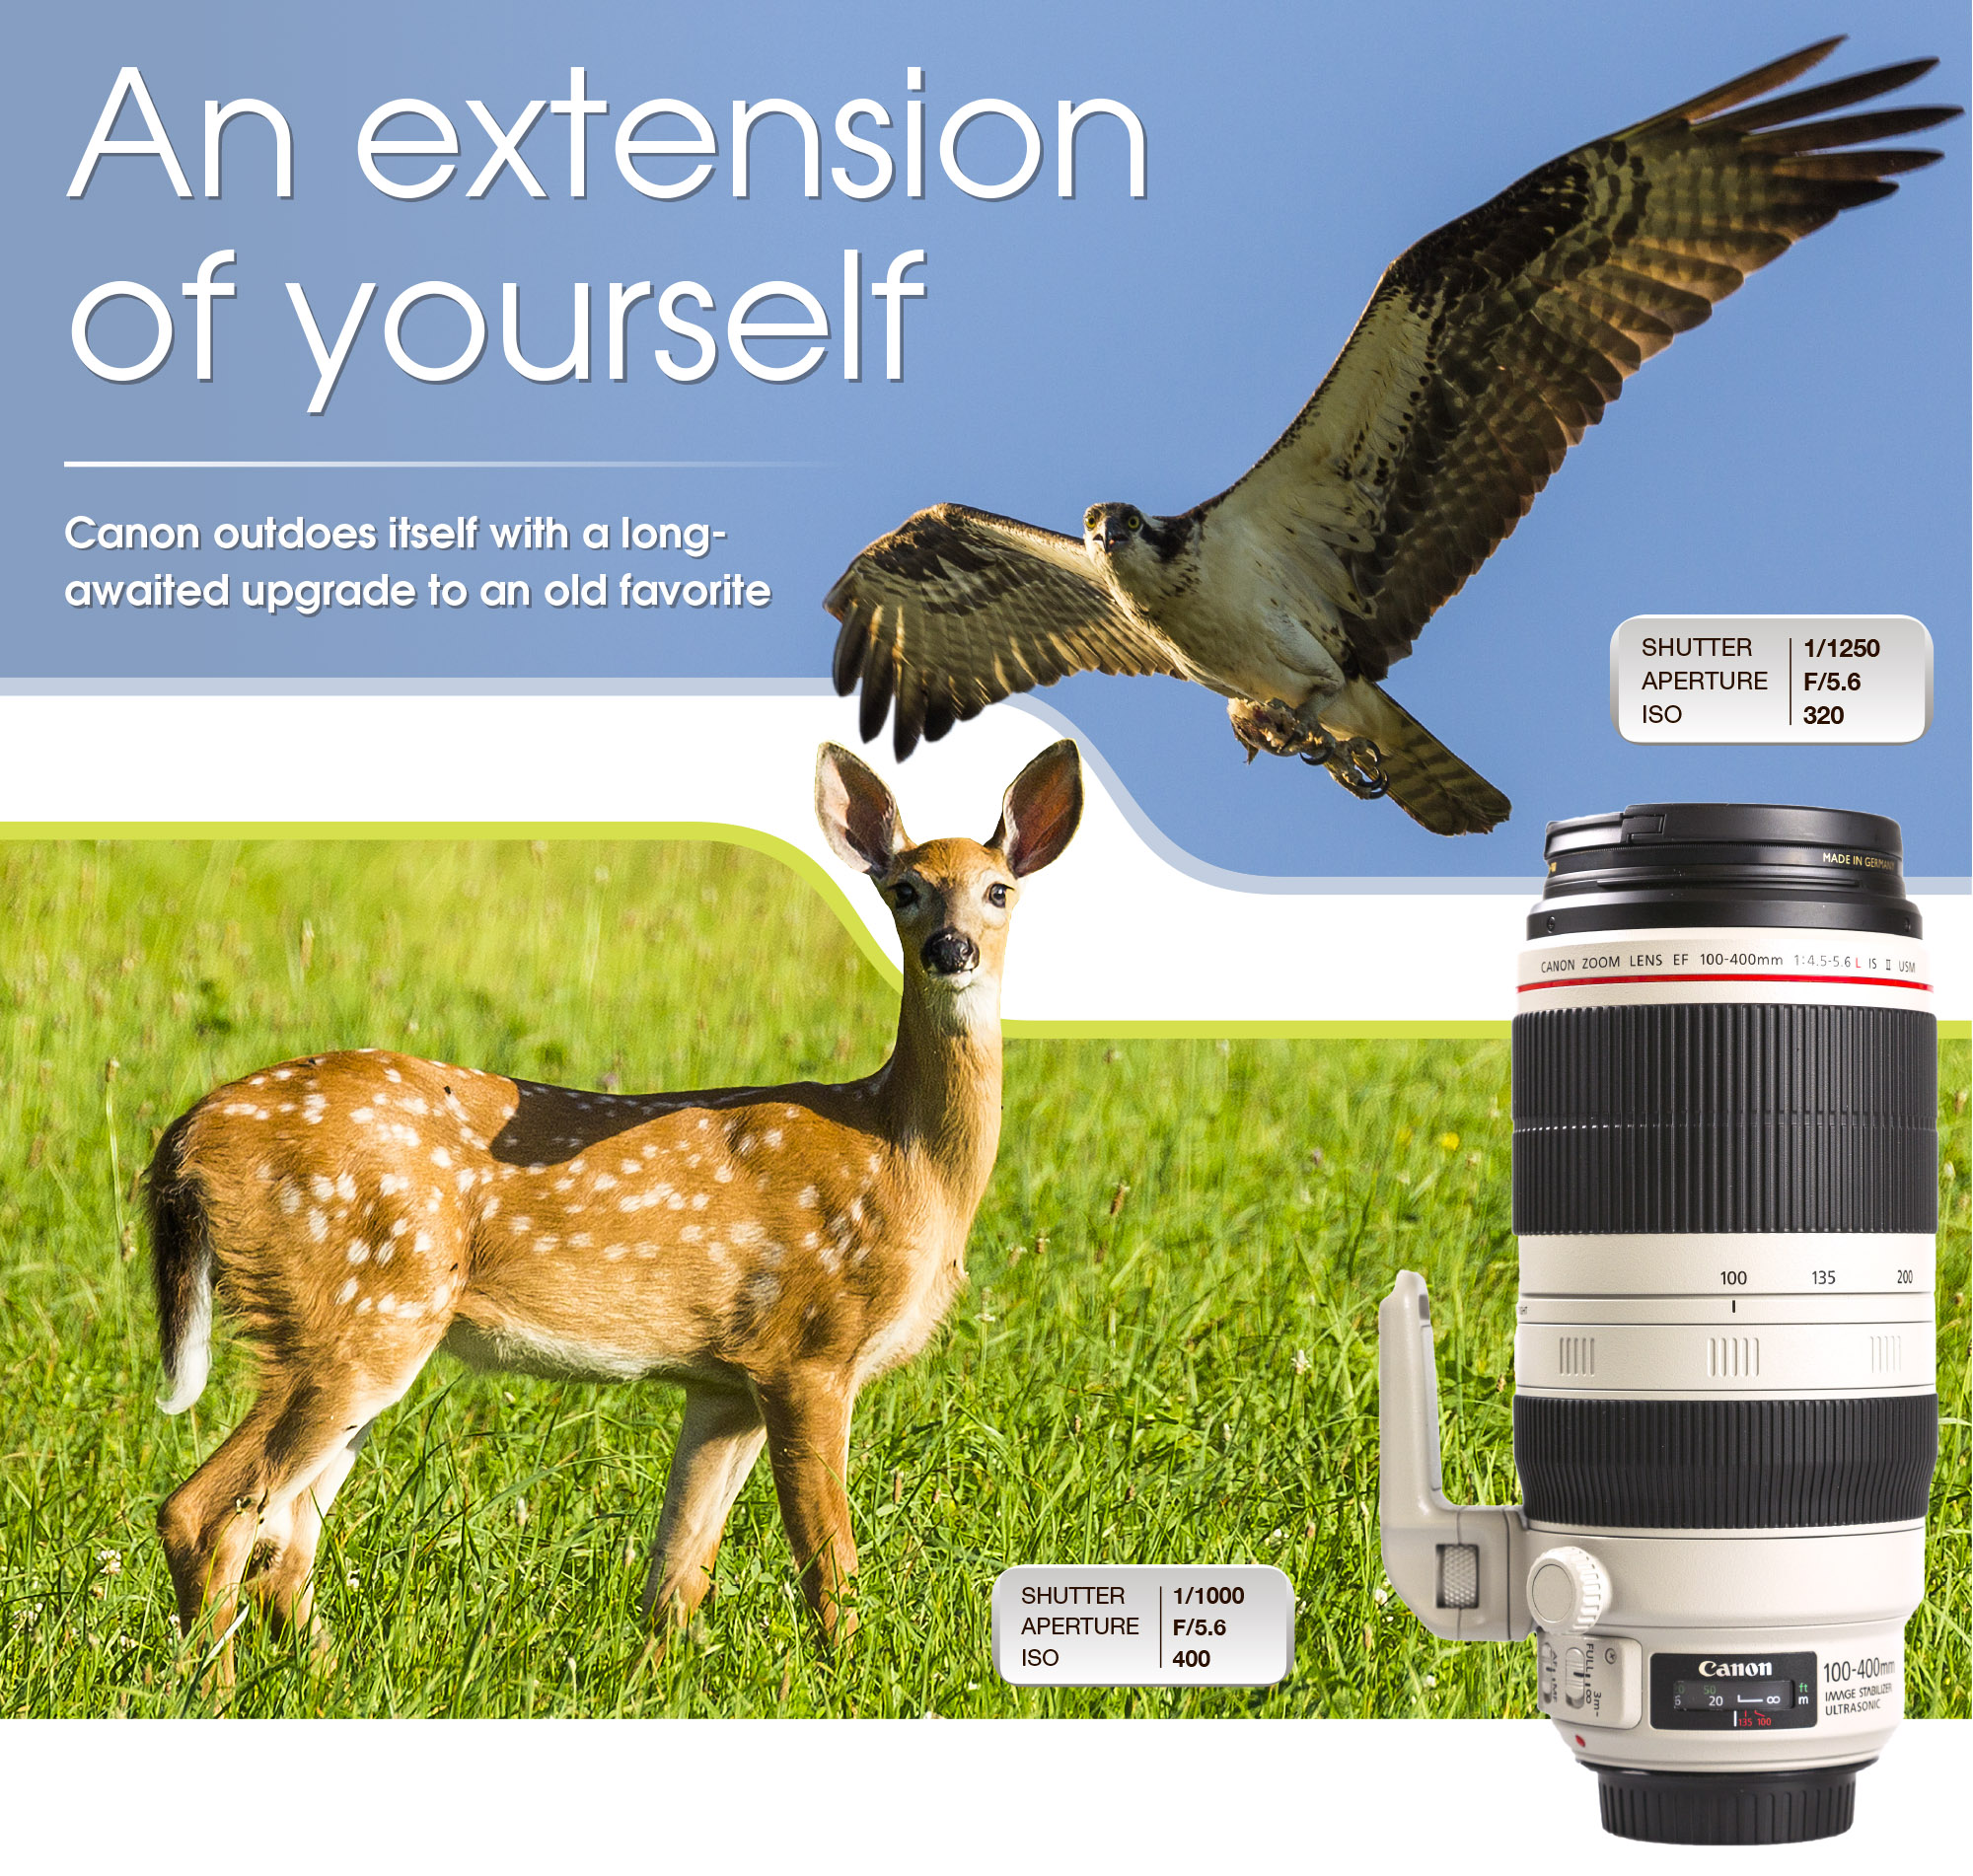 UPGRADED: Canon's new 100-400mm f4.5-5.6 L IS USM II is a brilliant lens and the value of this piece of equipment is highly valuable to wildlife, sports and event photographers. The advances in camera technology incorporated into this new lens make it a far better performer than its predecessor.